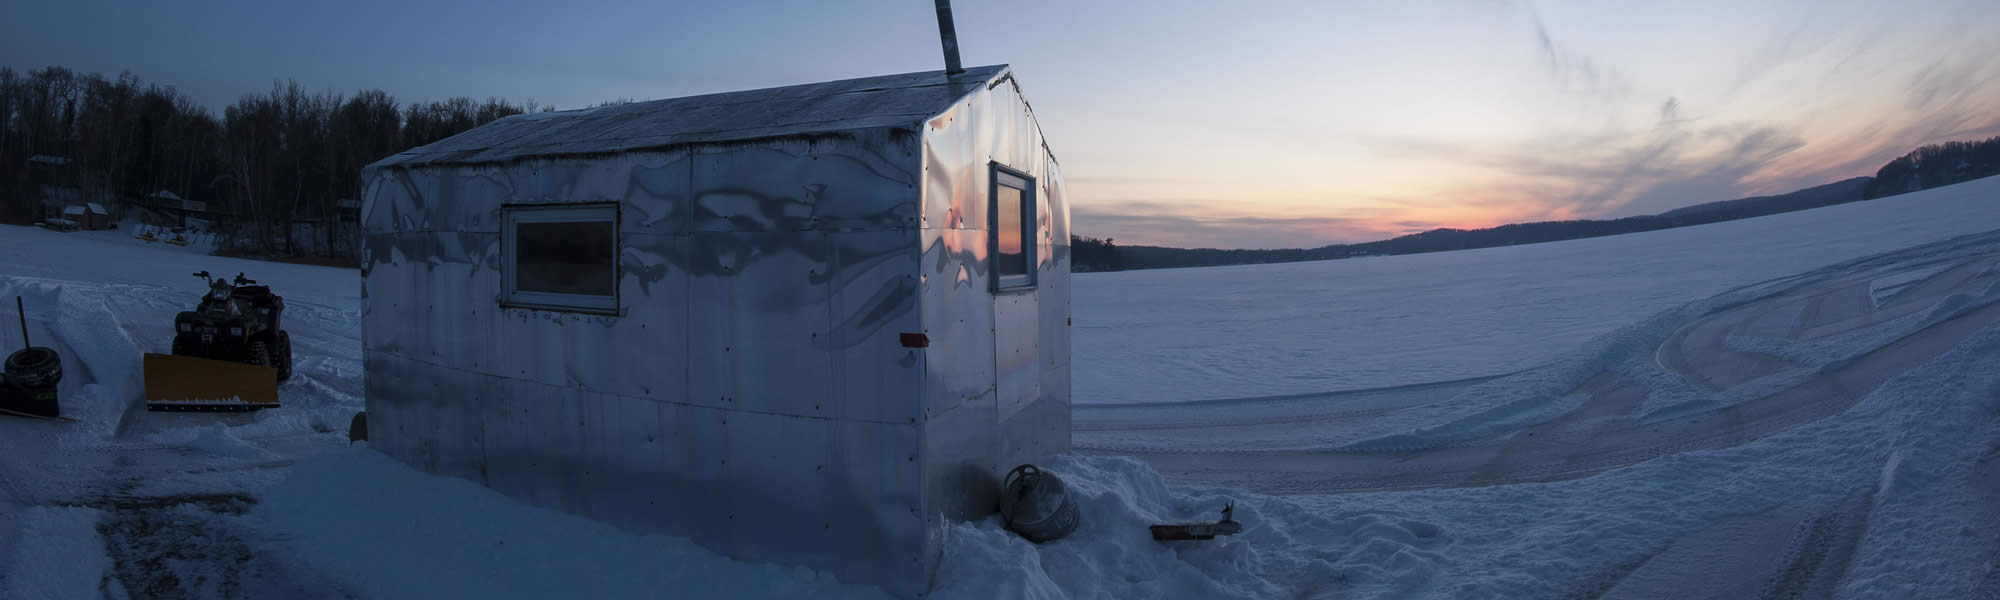 Ice fishing ice house accessories catch cover for Ice fish house accessories